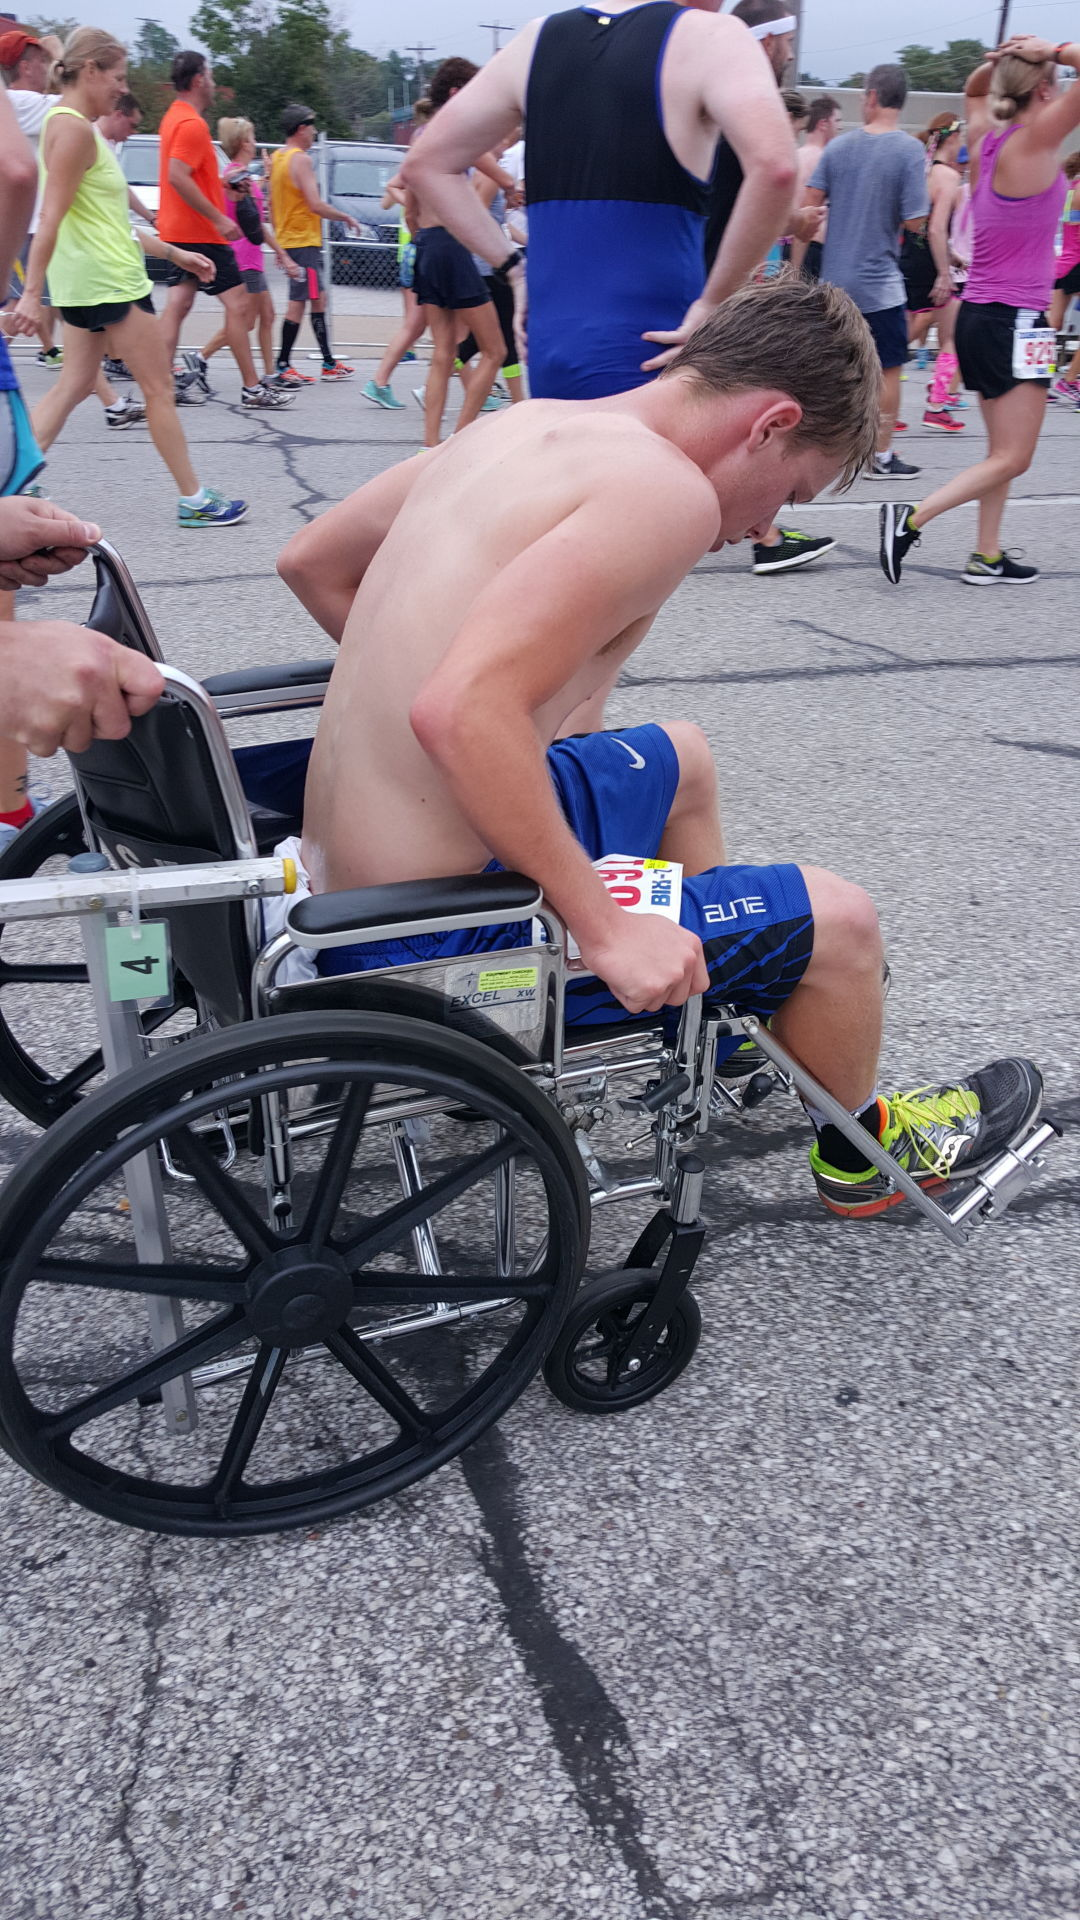 Medical tent adds more wheelchairs to finish line